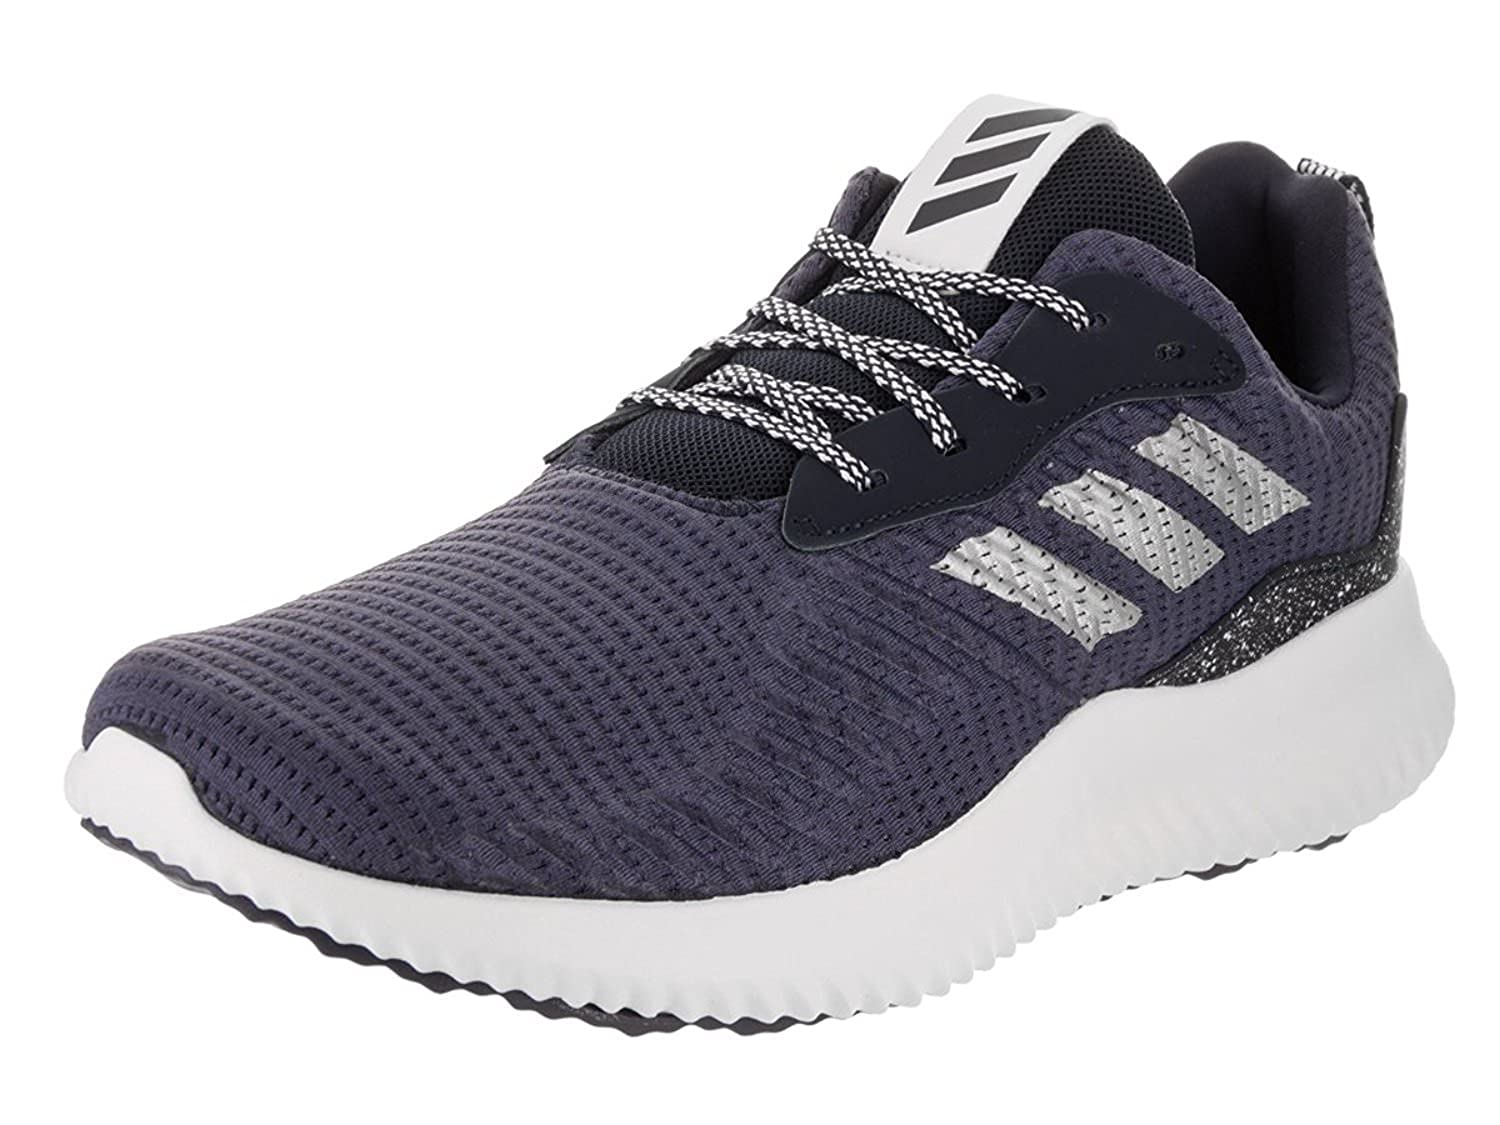 2d377bd400904 Adidas Alpha Bounce RC M Sports Running Shoes with Bounce Technology for Men-Uk-11   Buy Online at Low Prices in India - Amazon.in